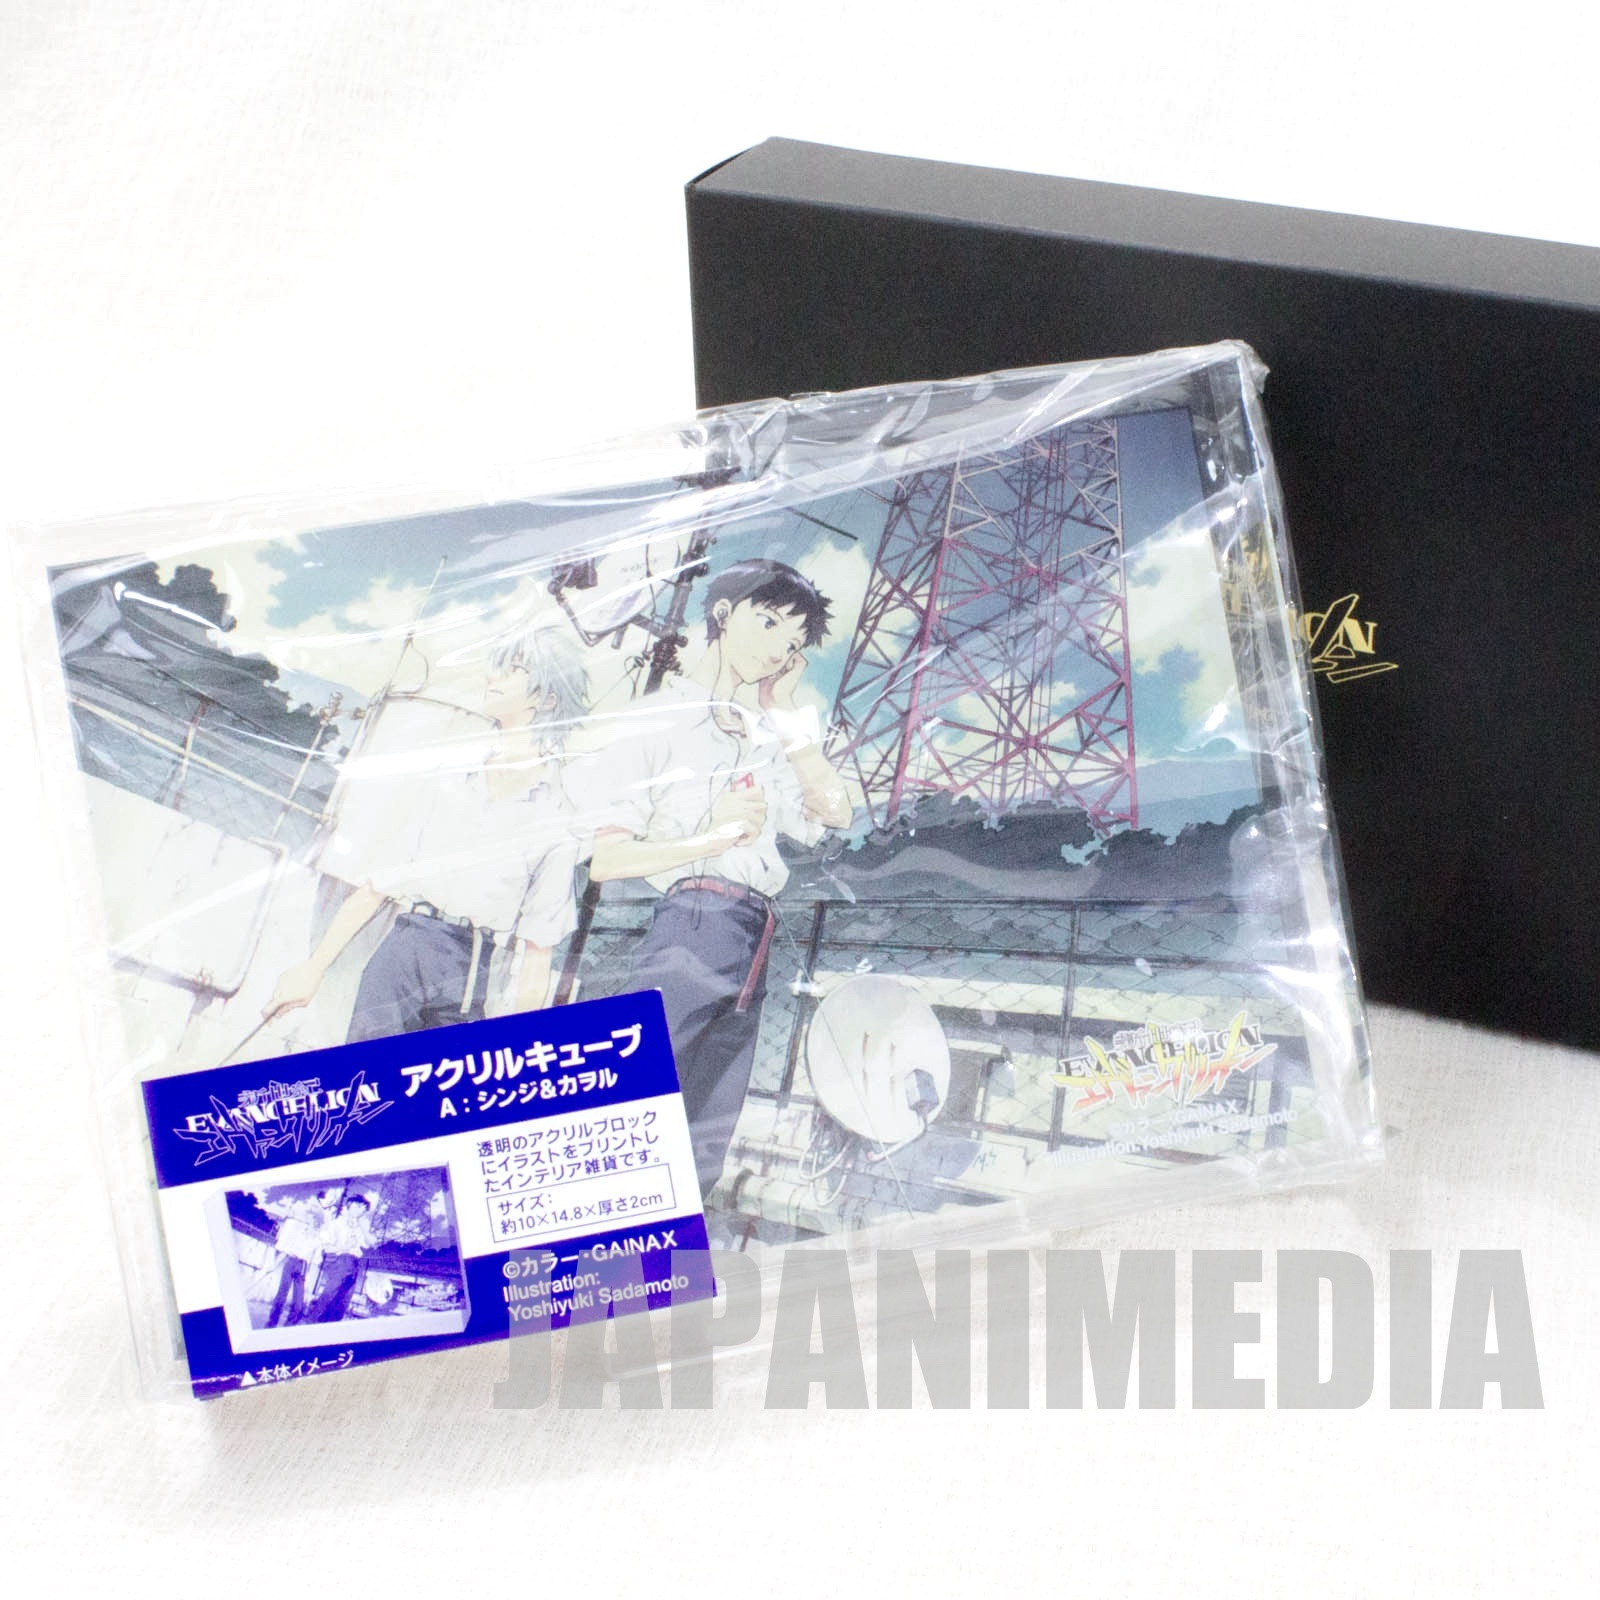 Evangelion Shinji & Kaworu Illustration Acrylic cube JAPAN ANIME